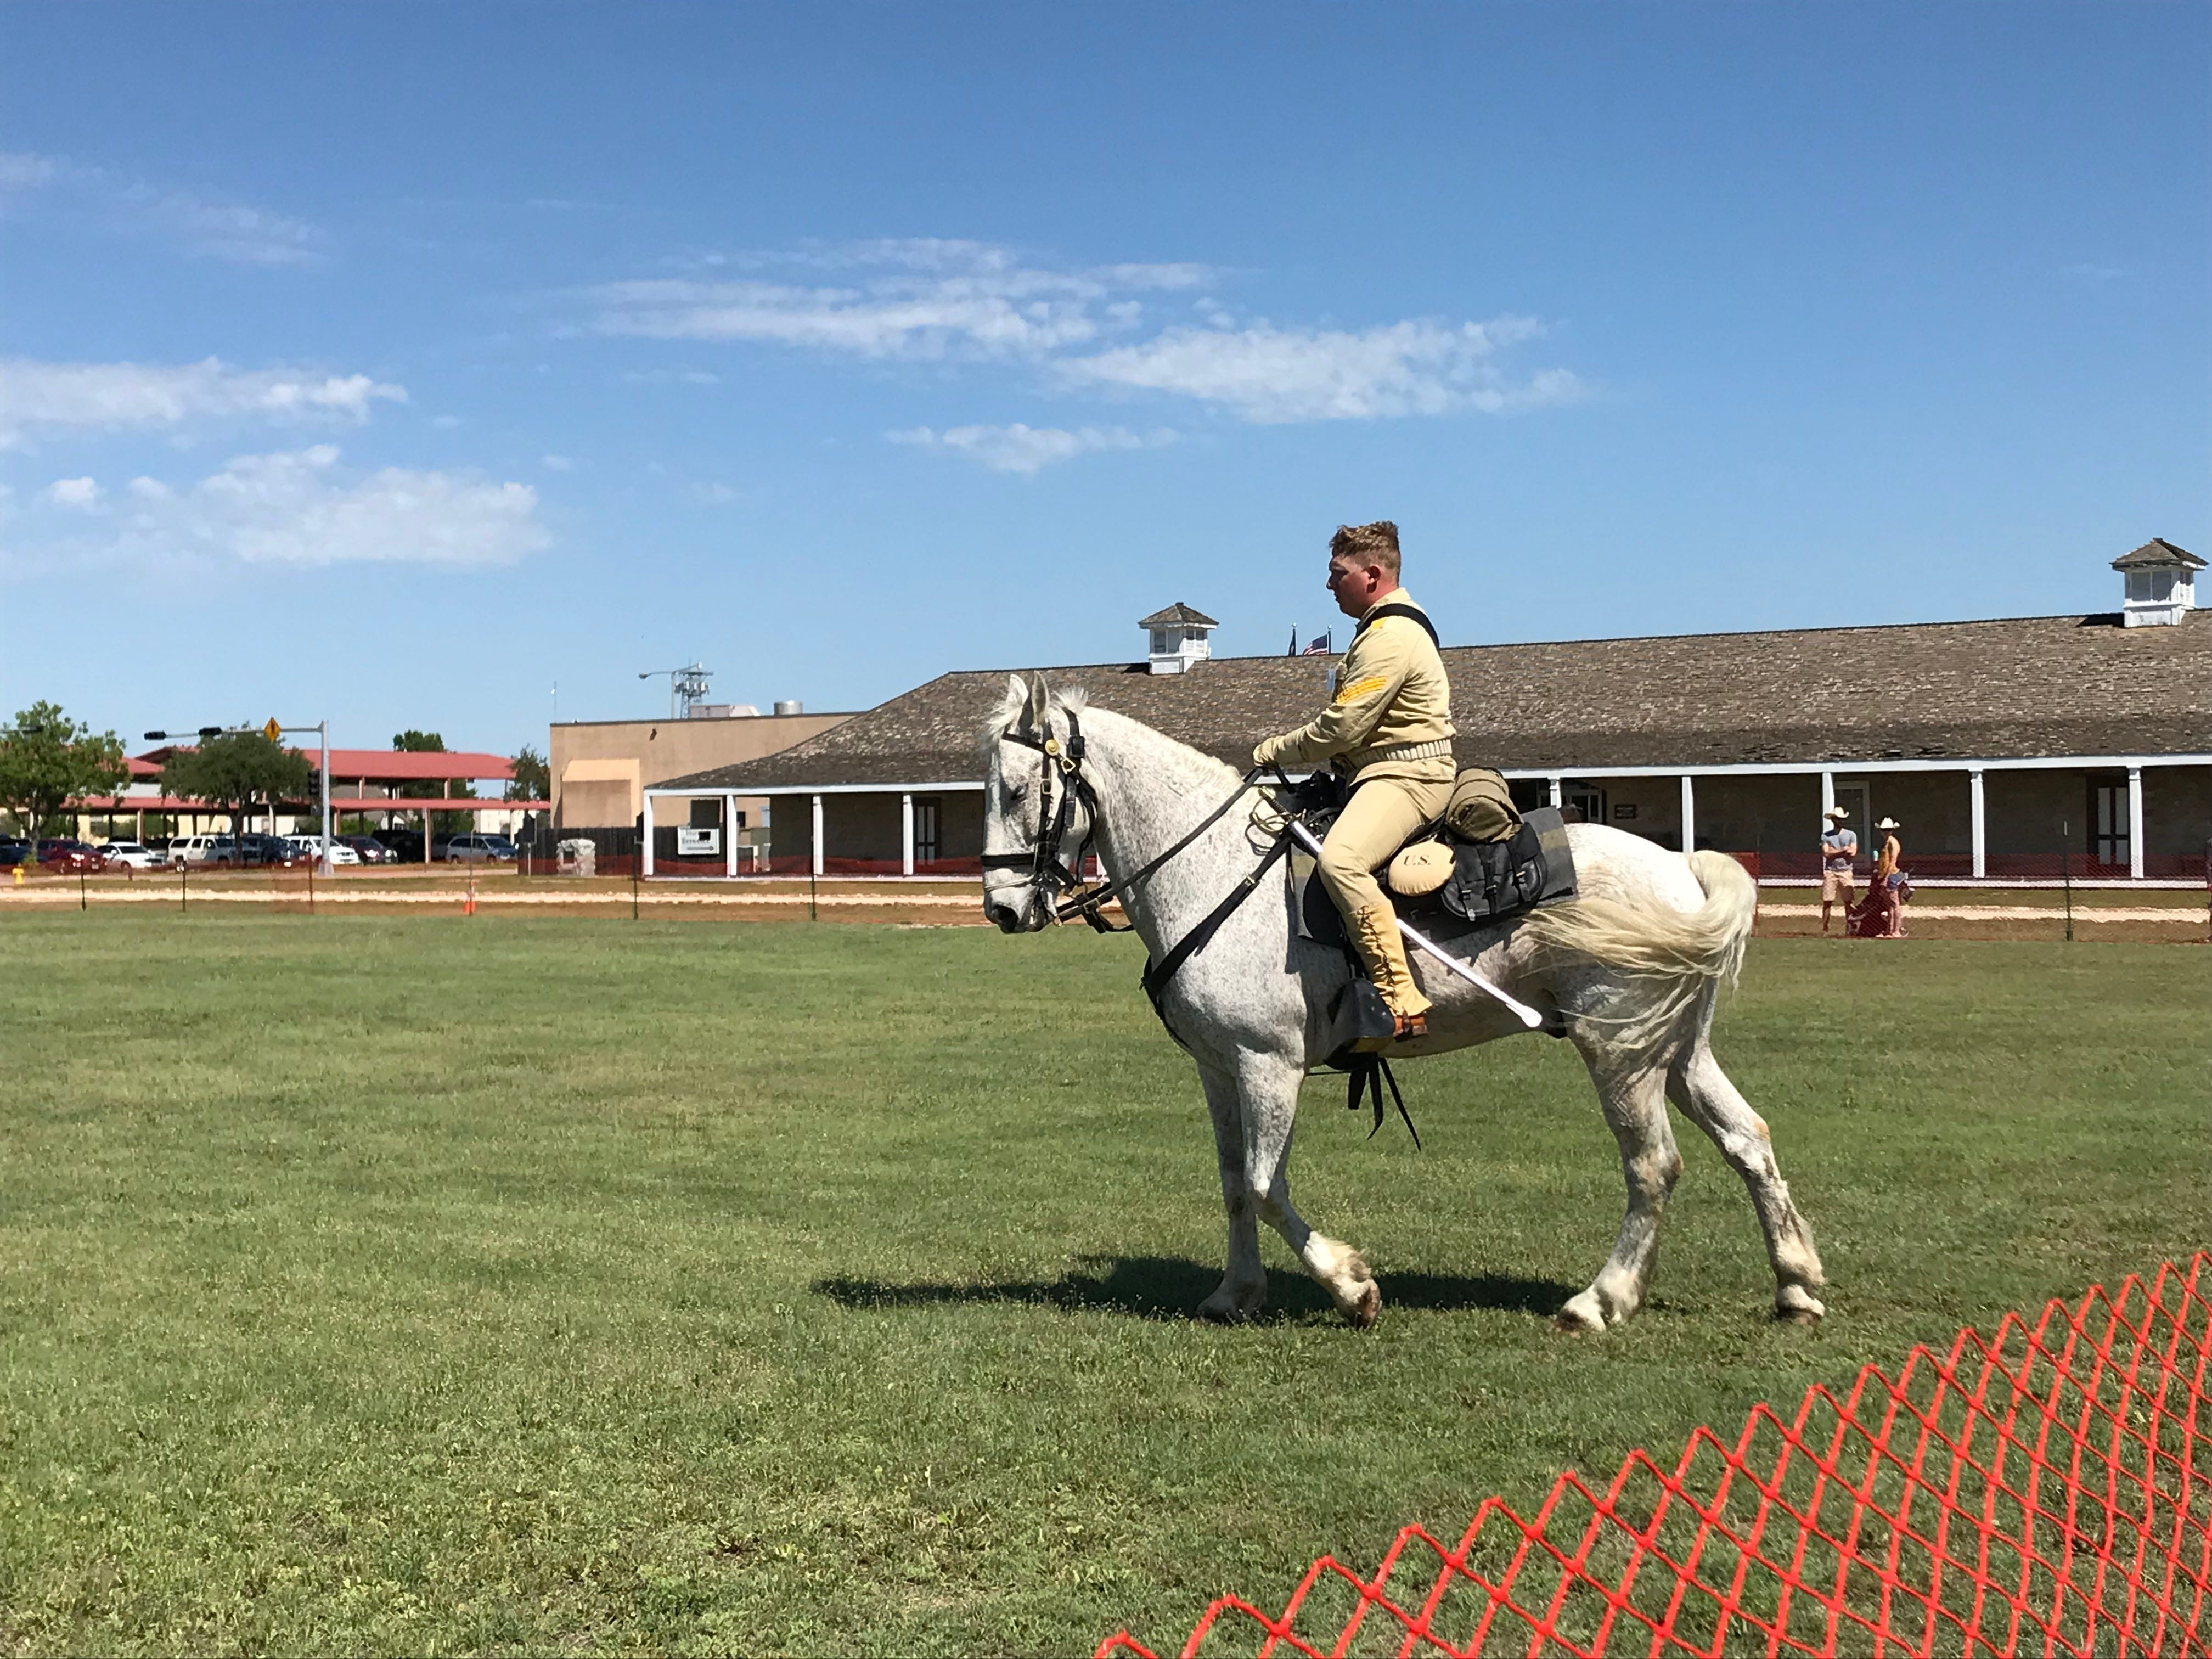 Anthony Morton, from Fort Irwin, California, urges his horse to move at the Regional Cavalry Competition at Fort Concho, 630 S. Oakes St. on Friday, April 26, 2019.